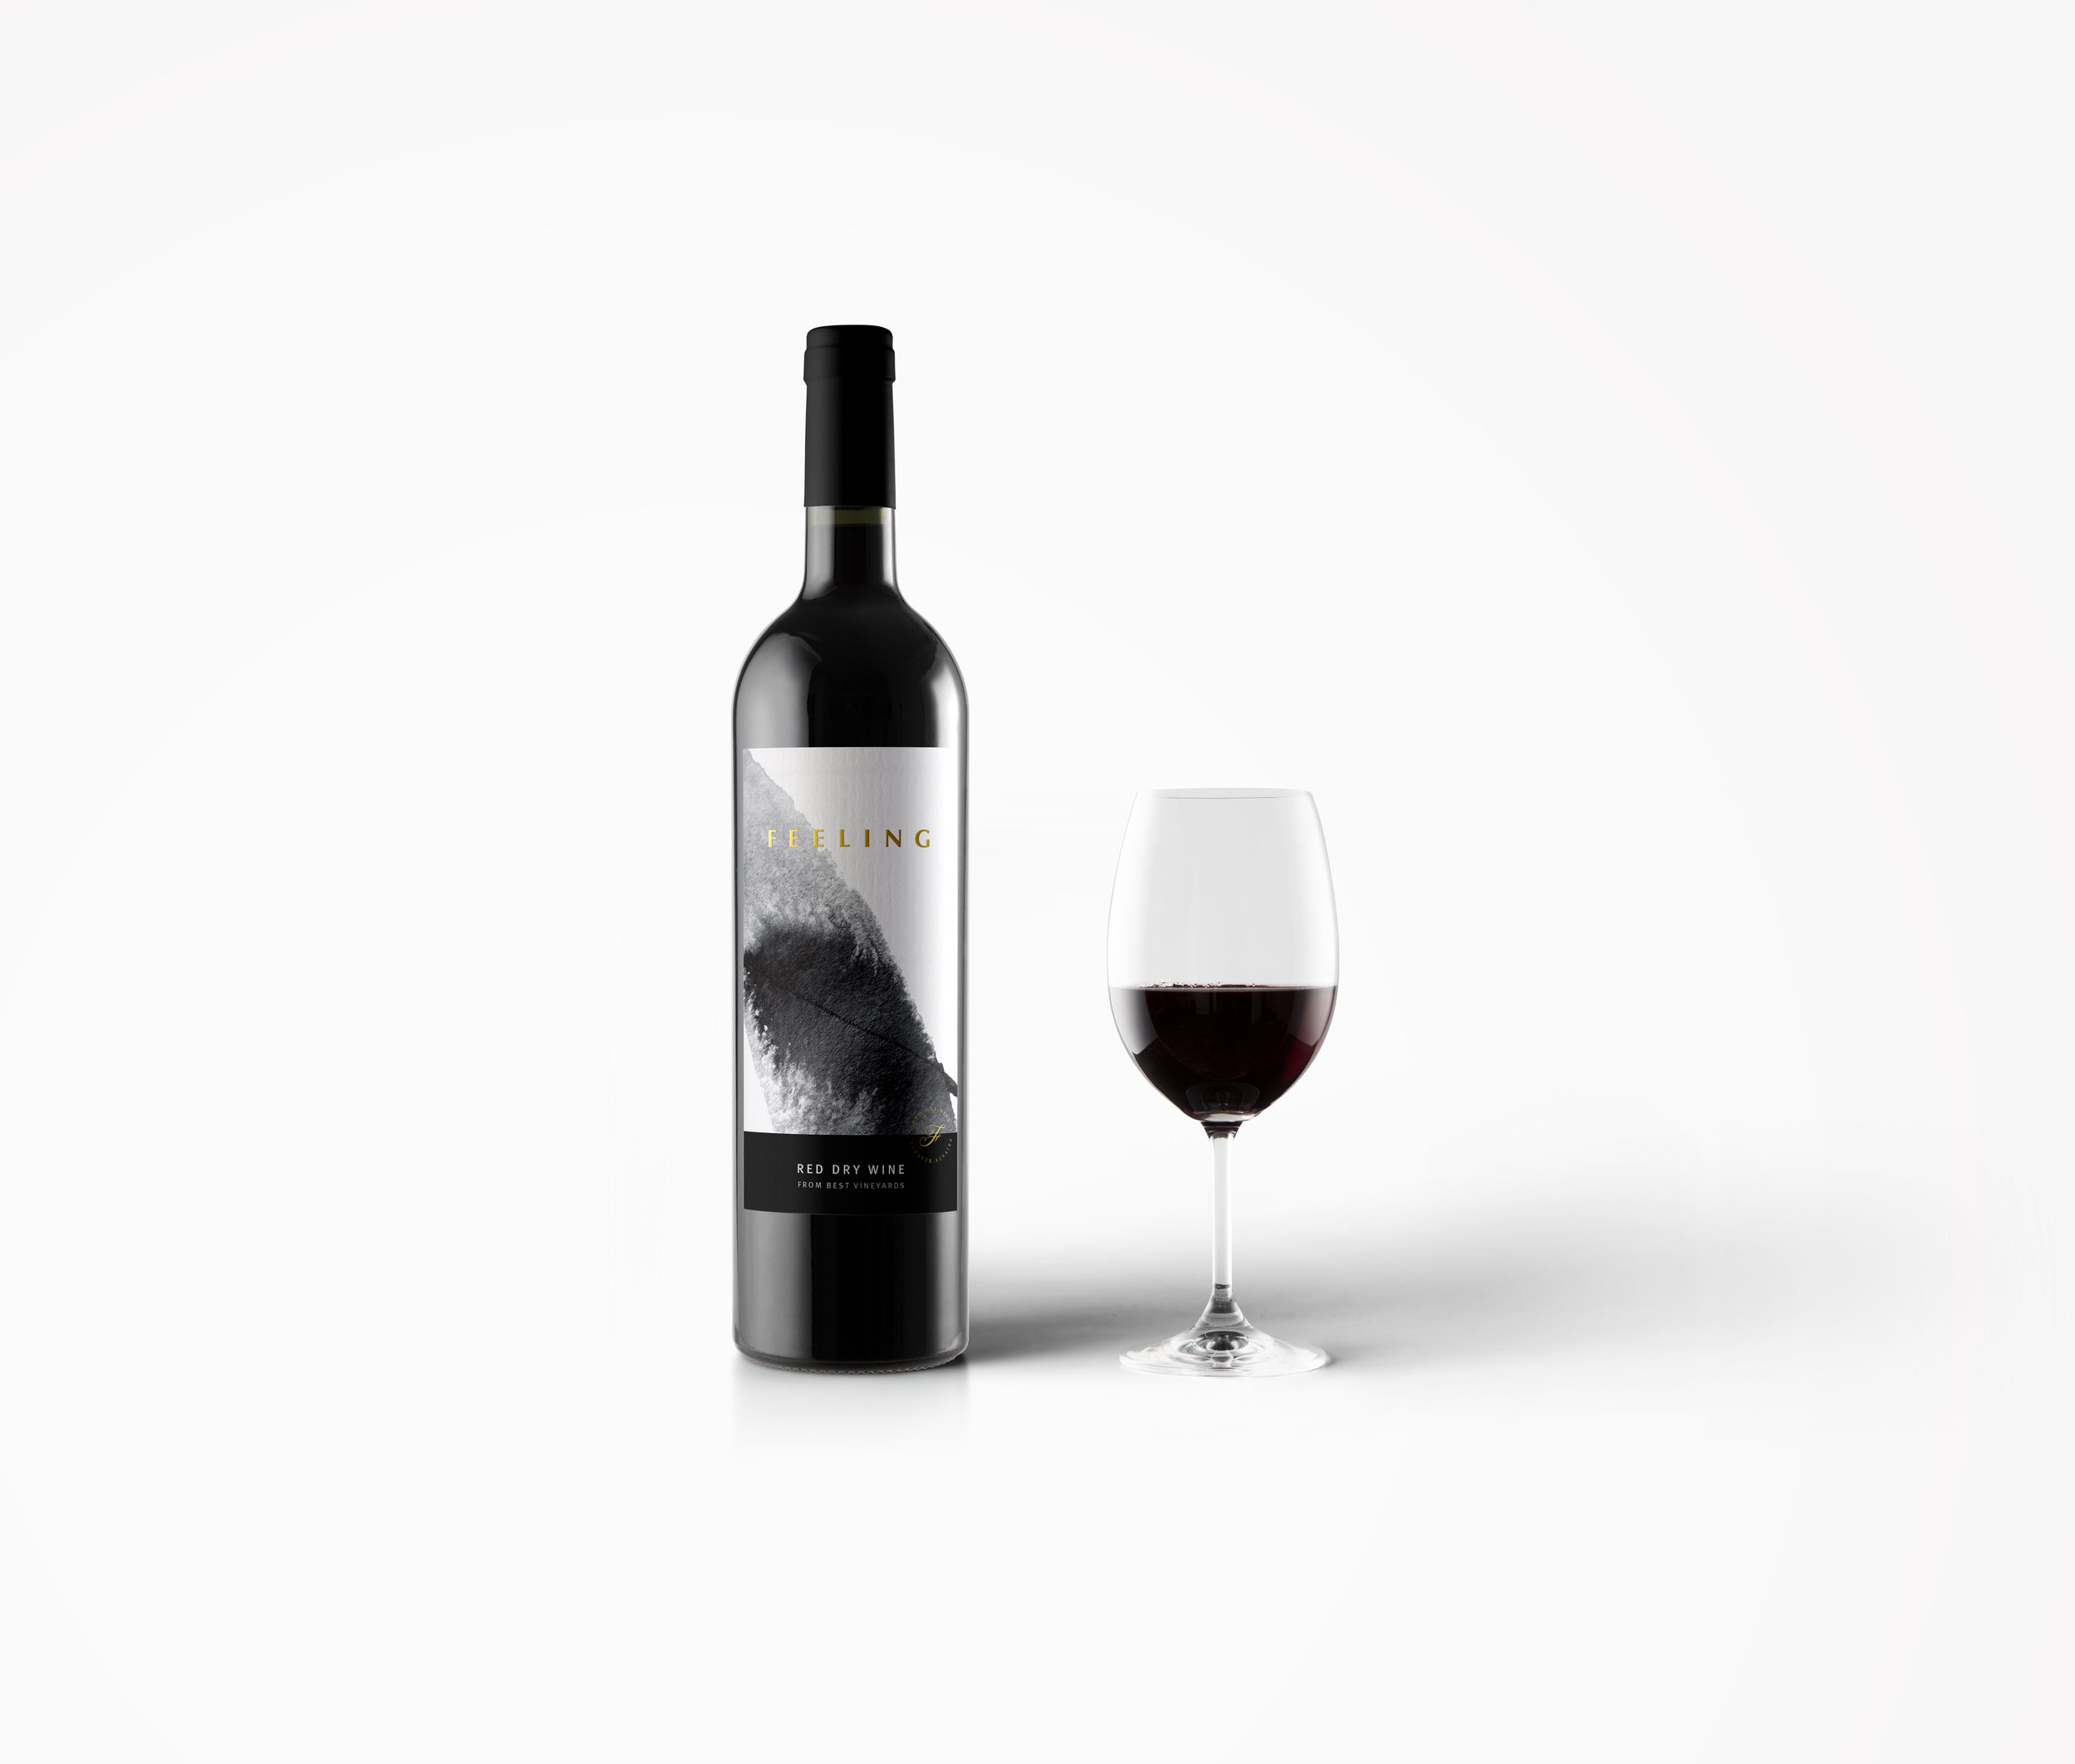 Label Packaging Design for Feeling White and Red Dry Wine / World Brand & Packaging Design Society